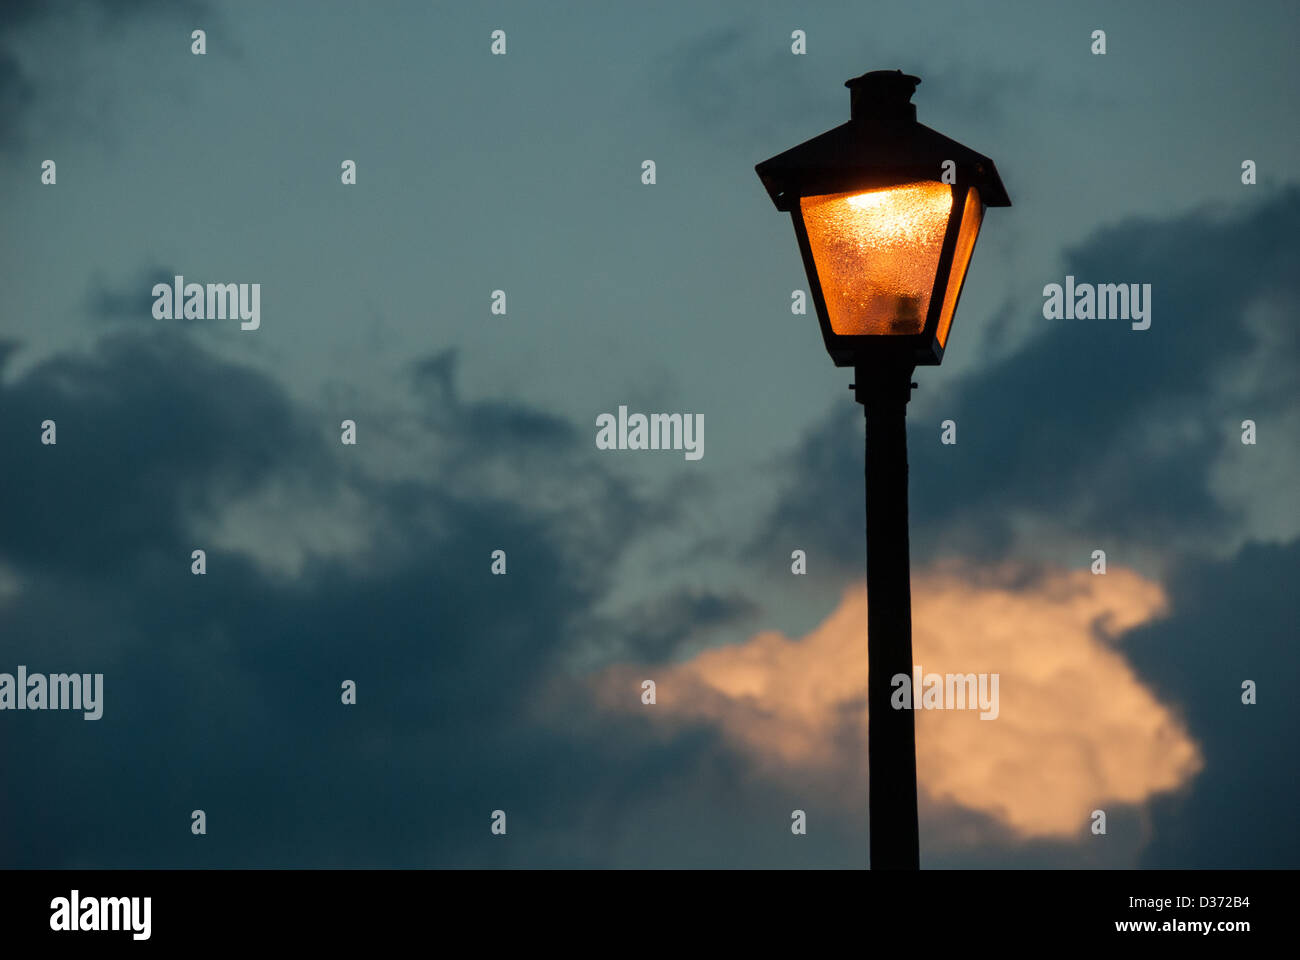 Exceptional The Warm Glow From A Lamp Post Appears To Illuminate A Cloud In The Last  Light Of Dusk Home Design Ideas